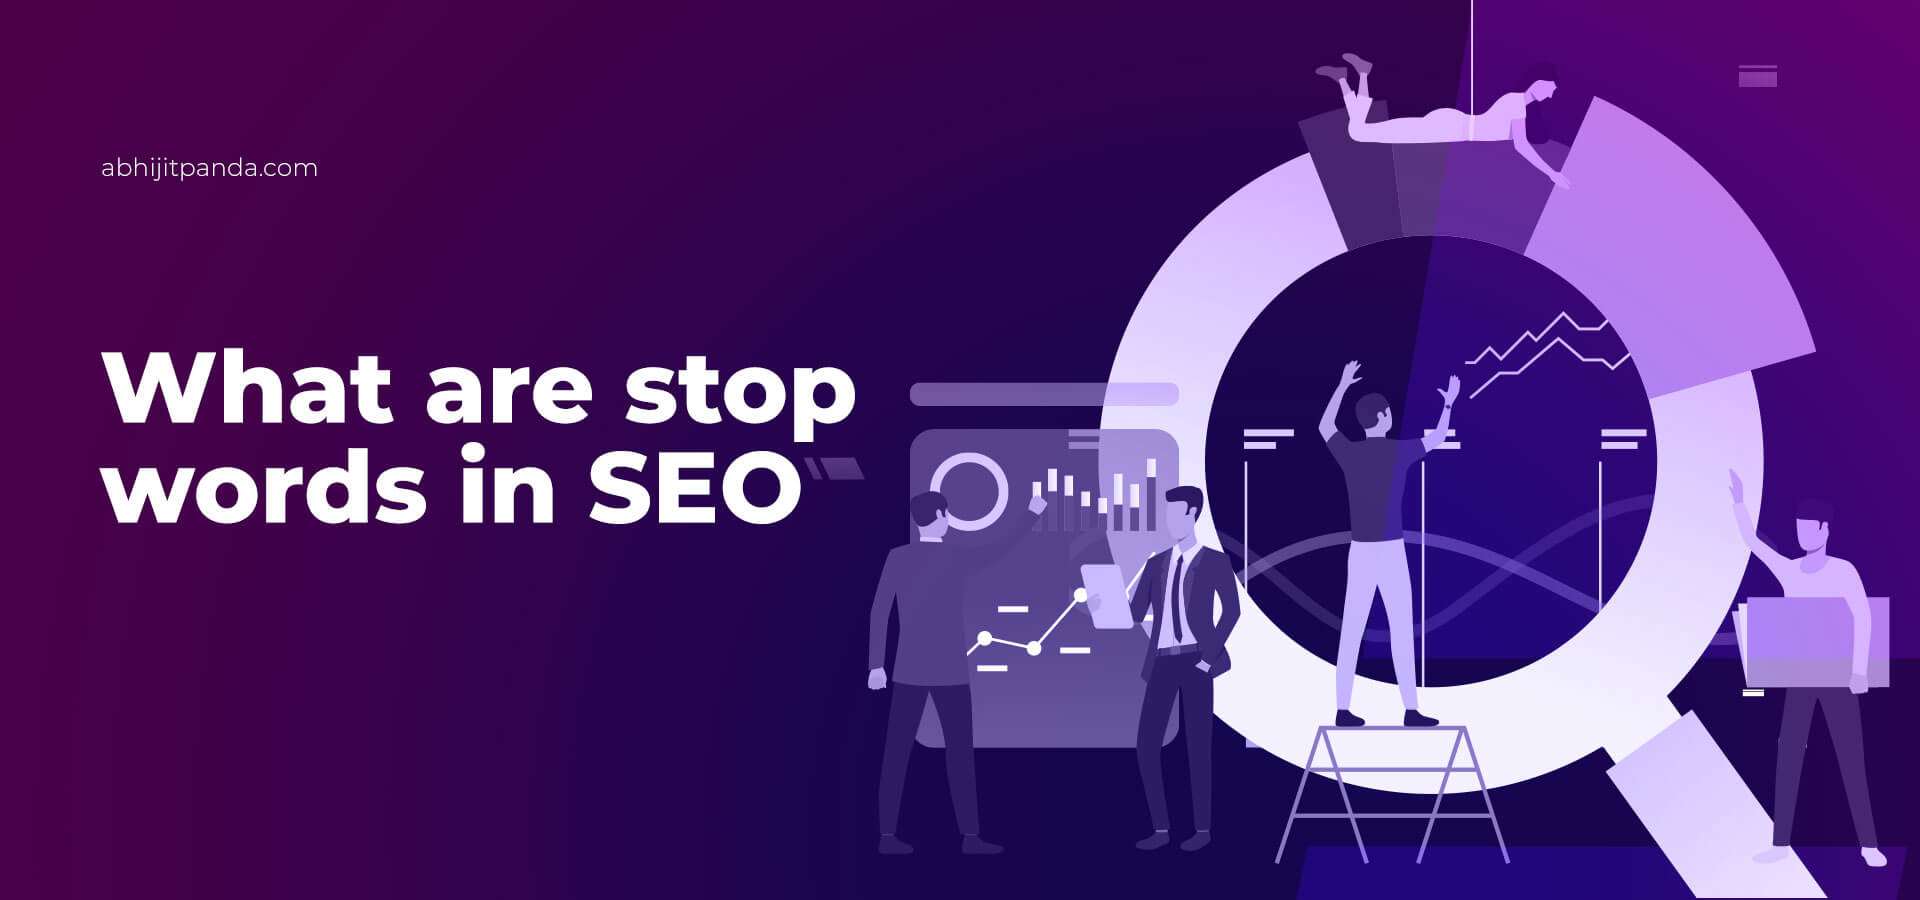 What are Stop Words in SEO